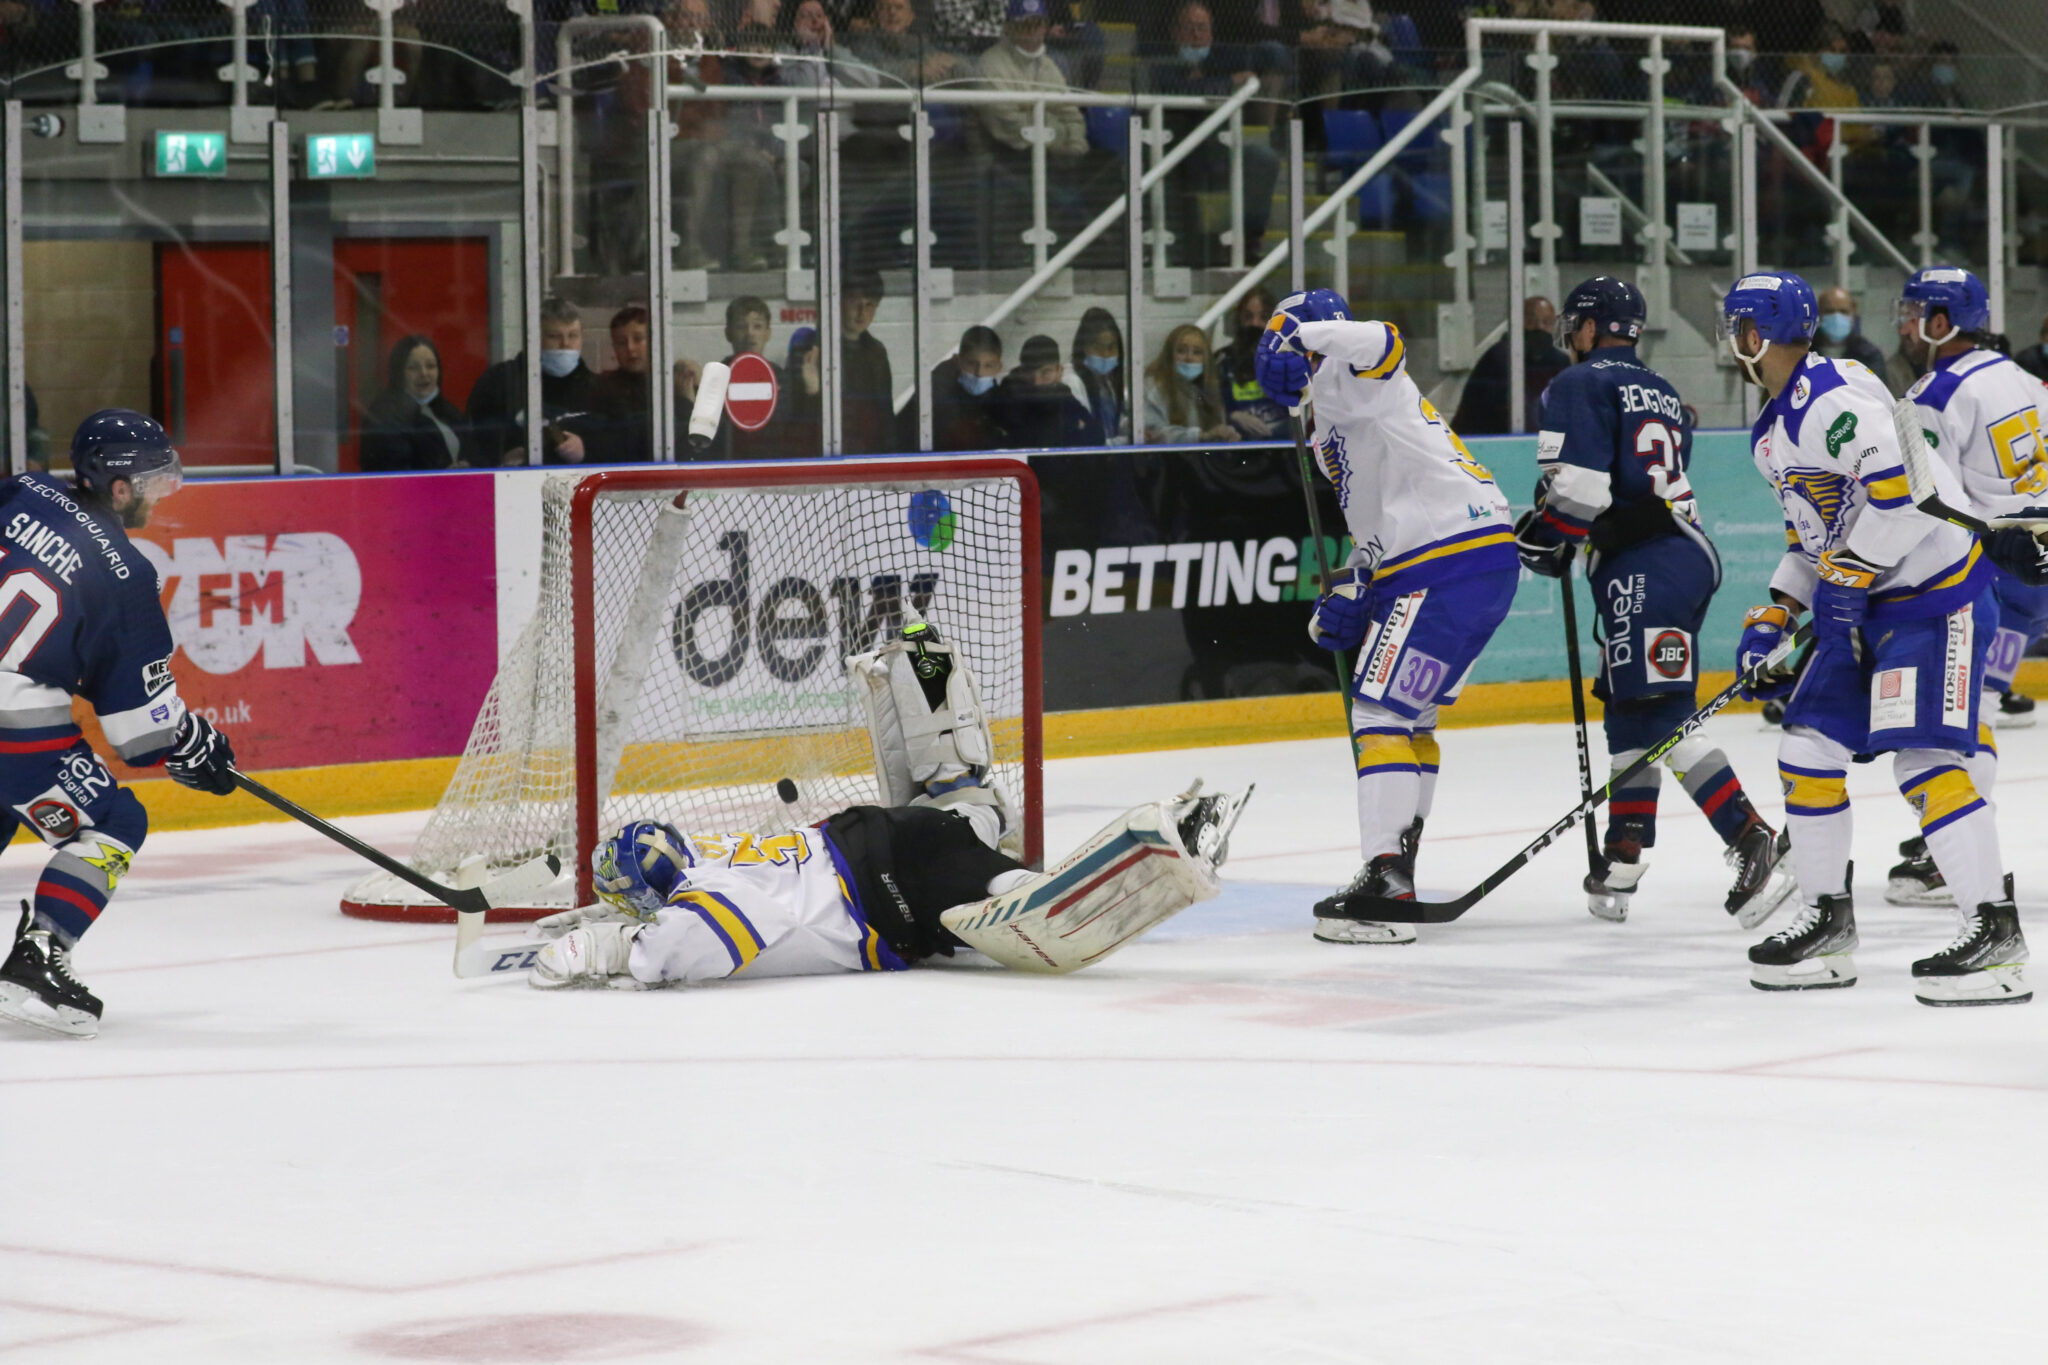 PREVIEW: DUNDEE STARS @ FIFE FLYERS